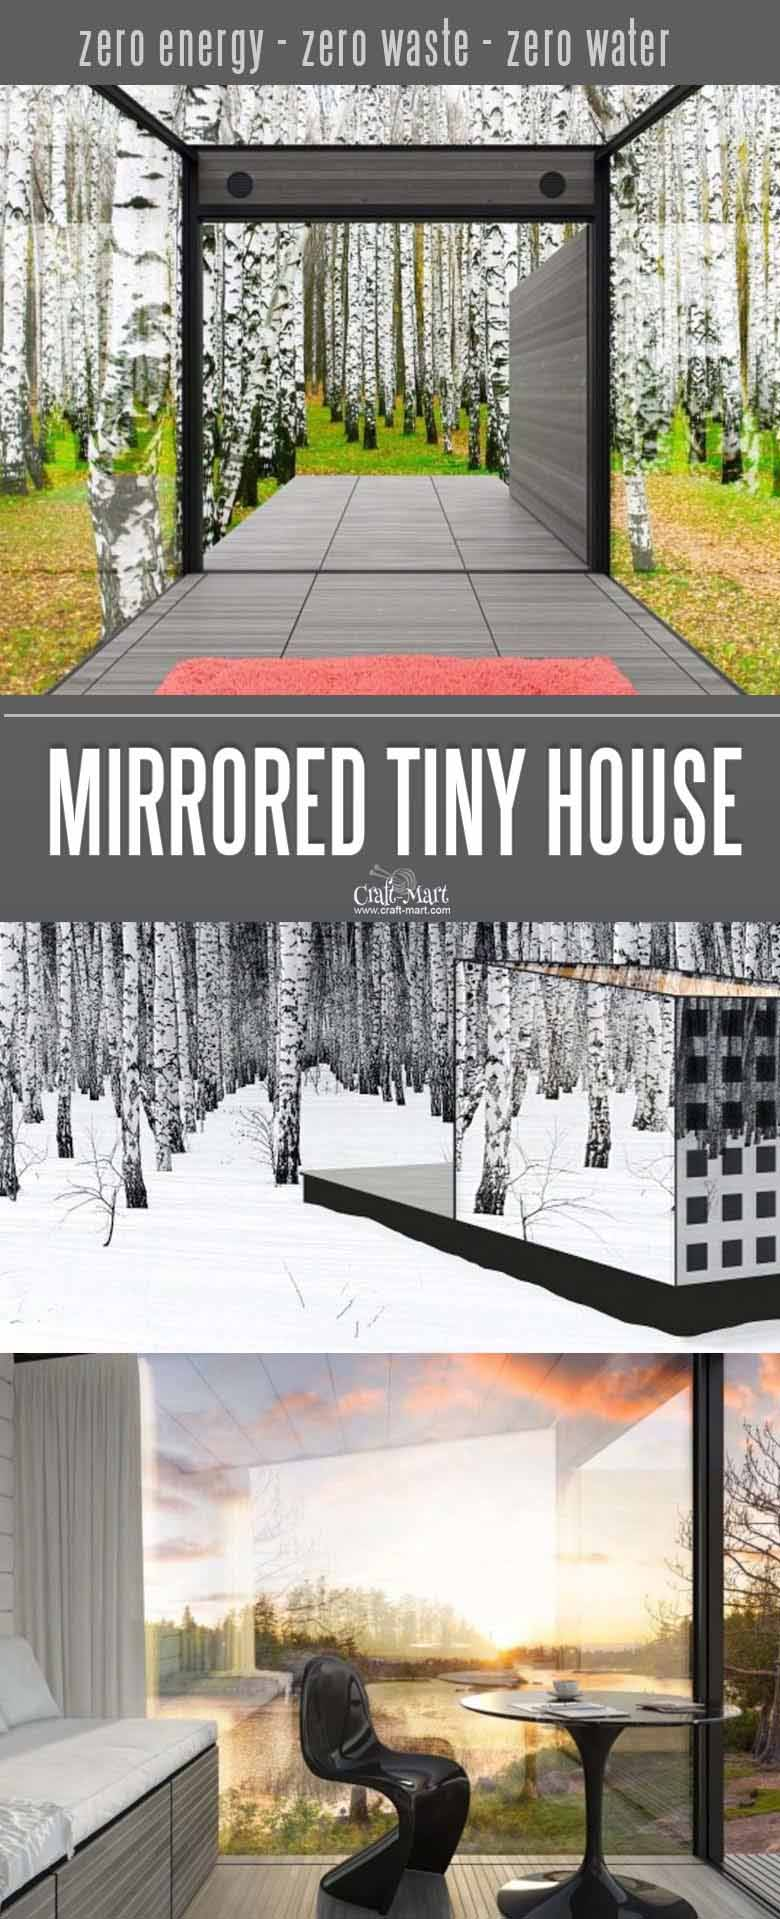 Mirrored tiny house that is self-sustainable. No need for heating or cooling. Look at these absolutely awesome tiny houses that you can afford! Some are 100% sustainable and do NOT need any utilities besides internet! You can add custom features from most of the tiny home builders. Keep dreaming on or take an action and get one of these little affordable homes!#tinyhouseplans #tinyhome #tinyhouses #diywoodcrafts #diyproject #realestate #smallhouseplans